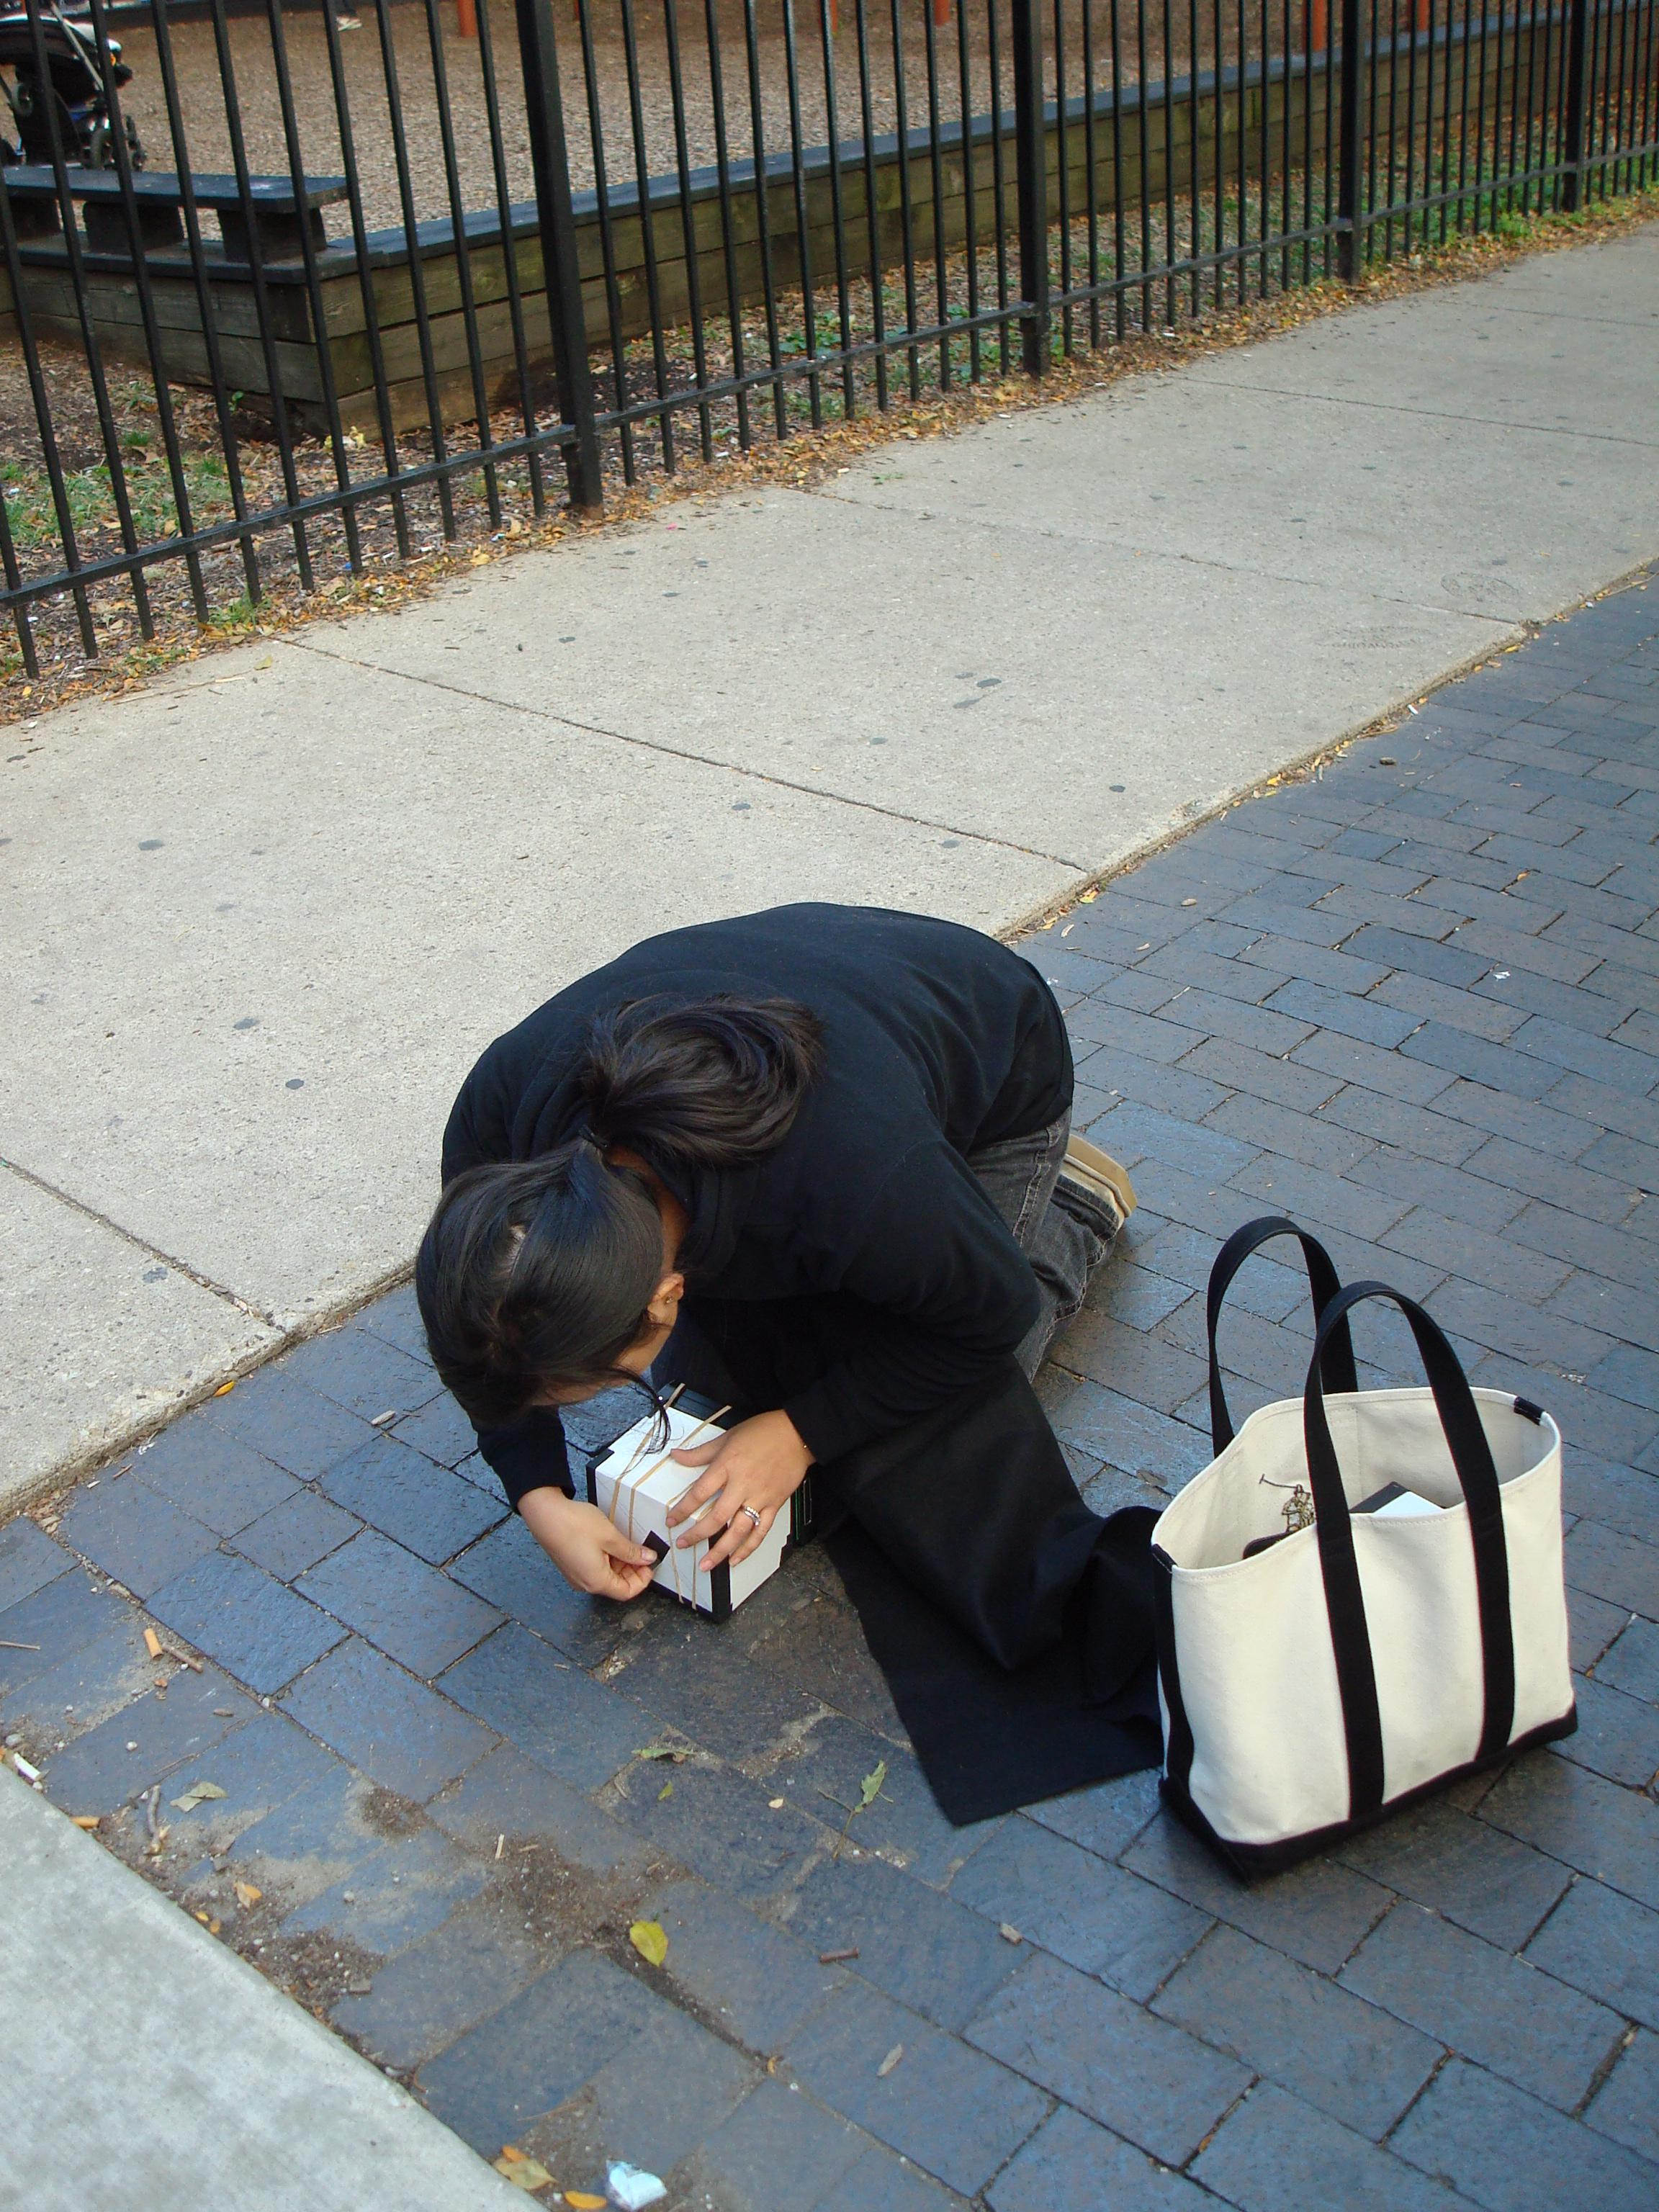 A person dressed in dark clothing kneels, hunched over a small white box and pulling out a small black tab.